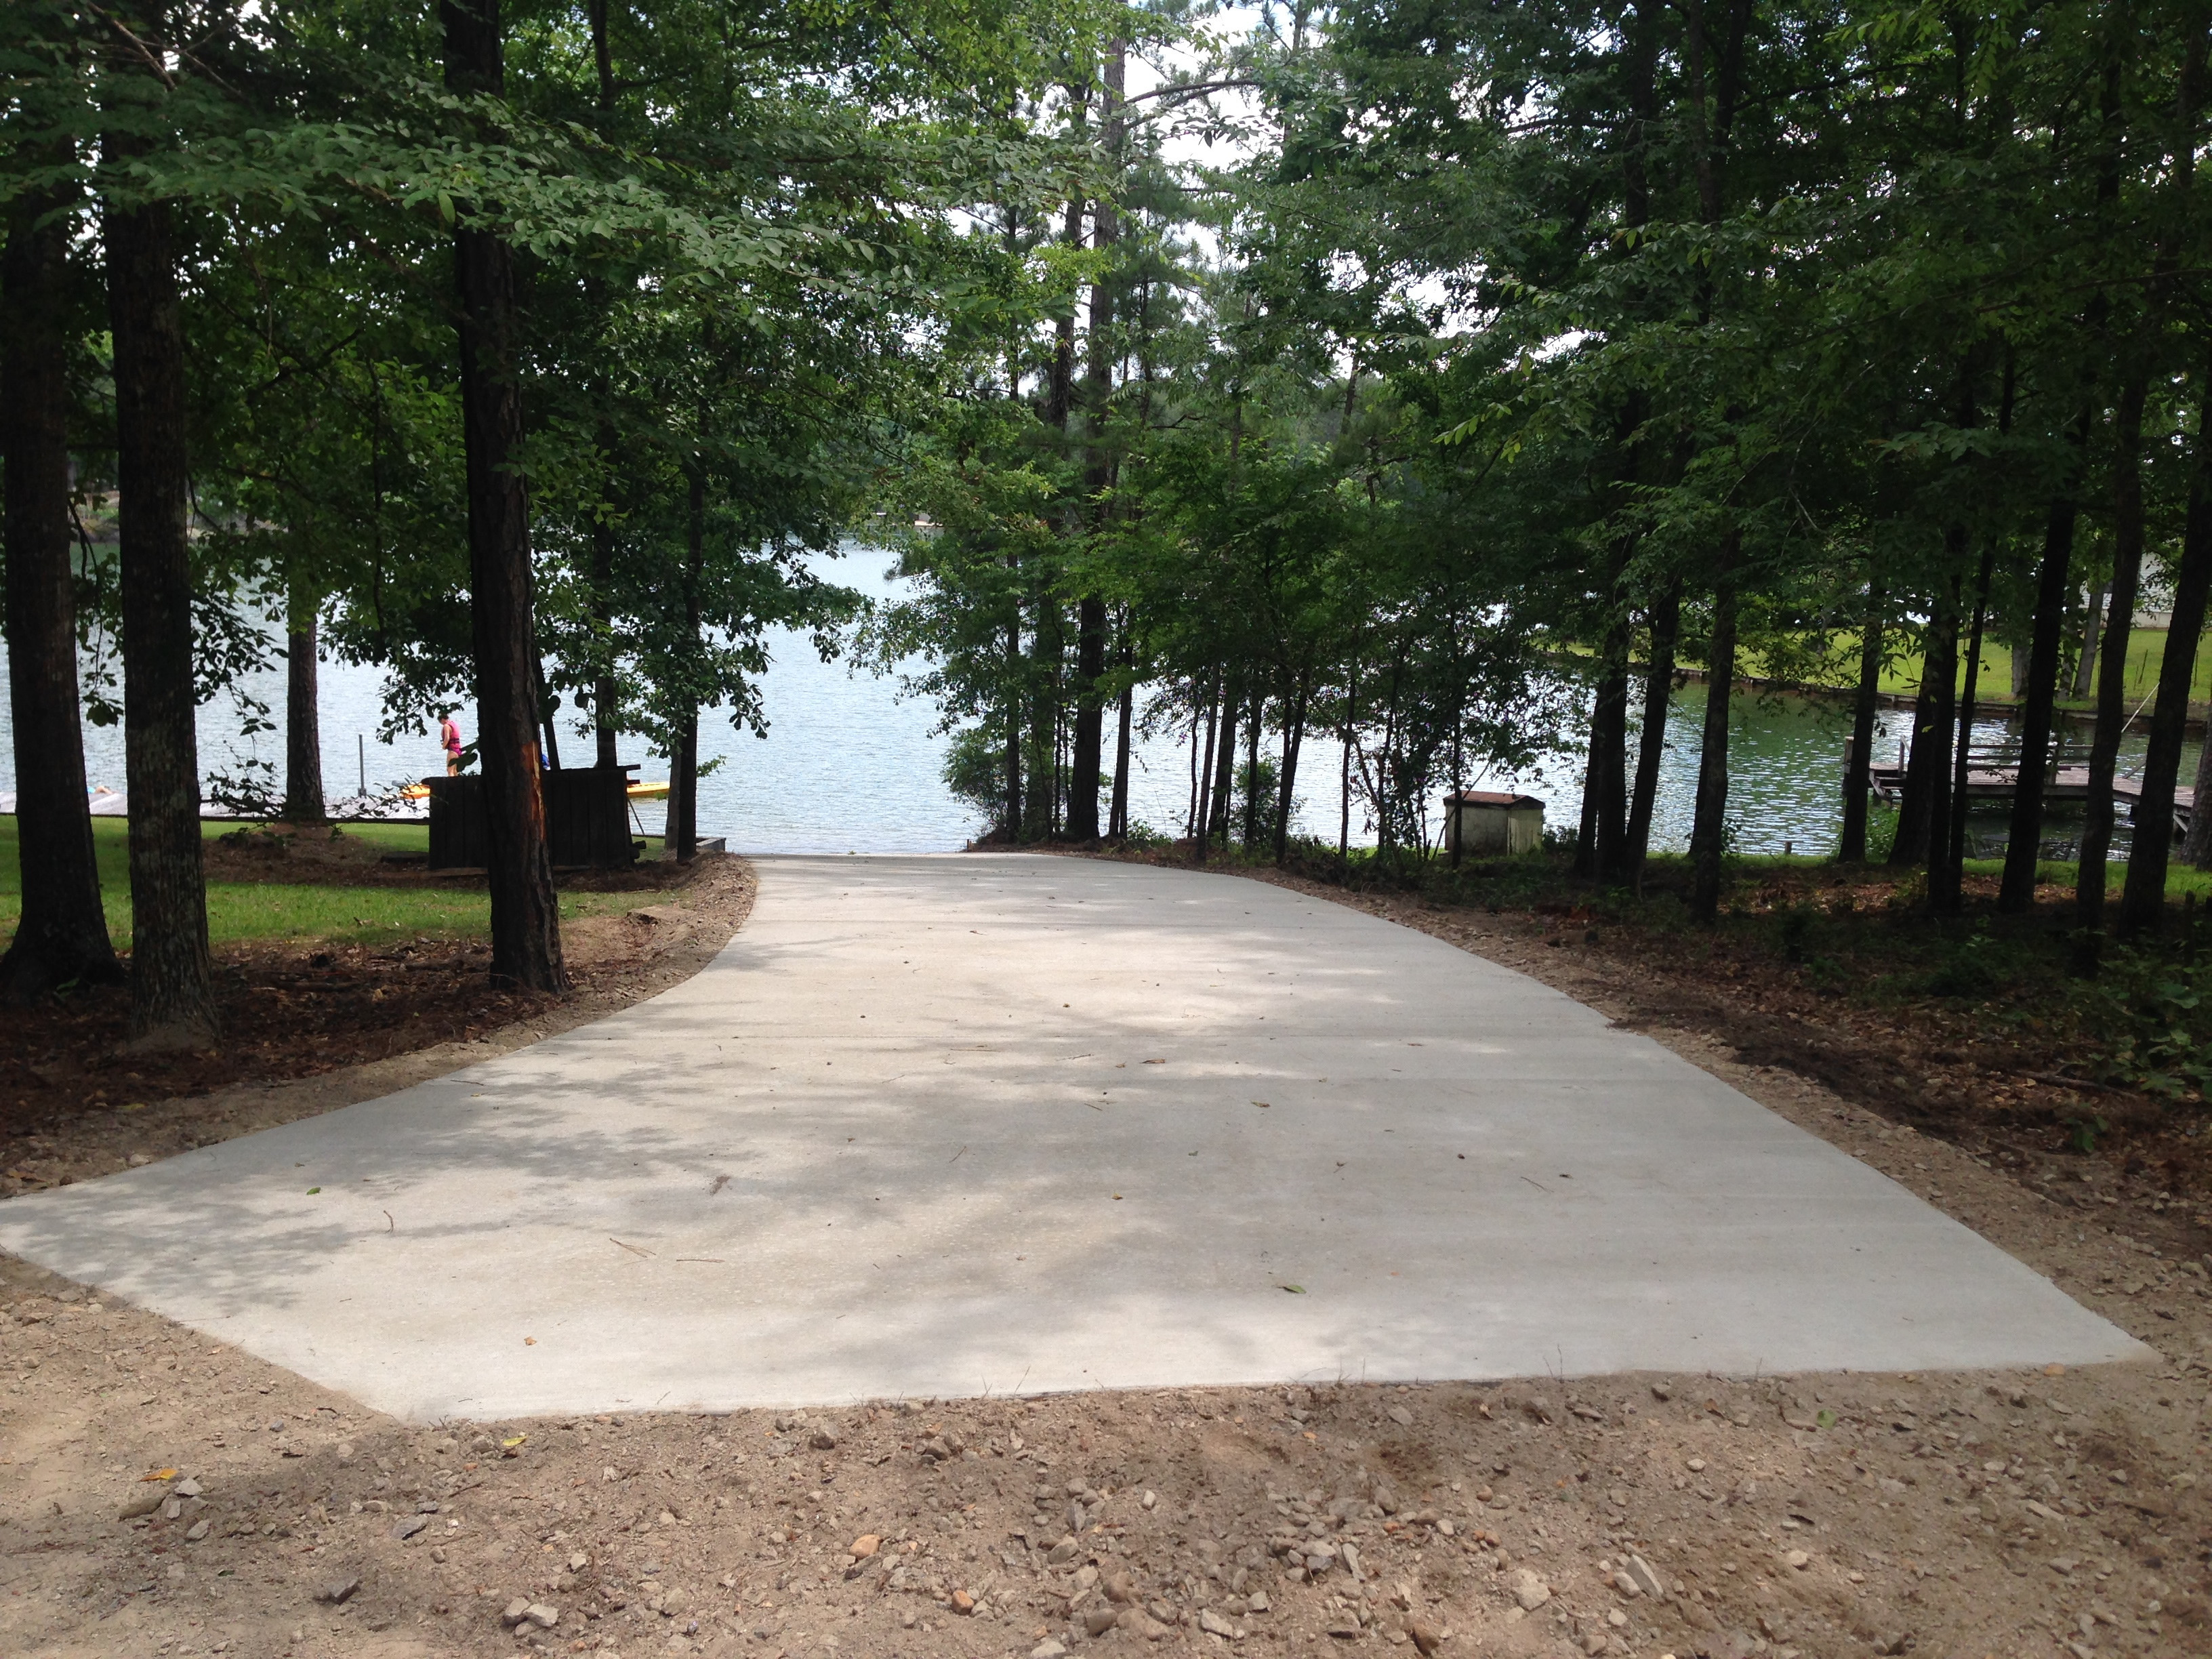 Concrete Boat Ramp Lake Martin Alabama